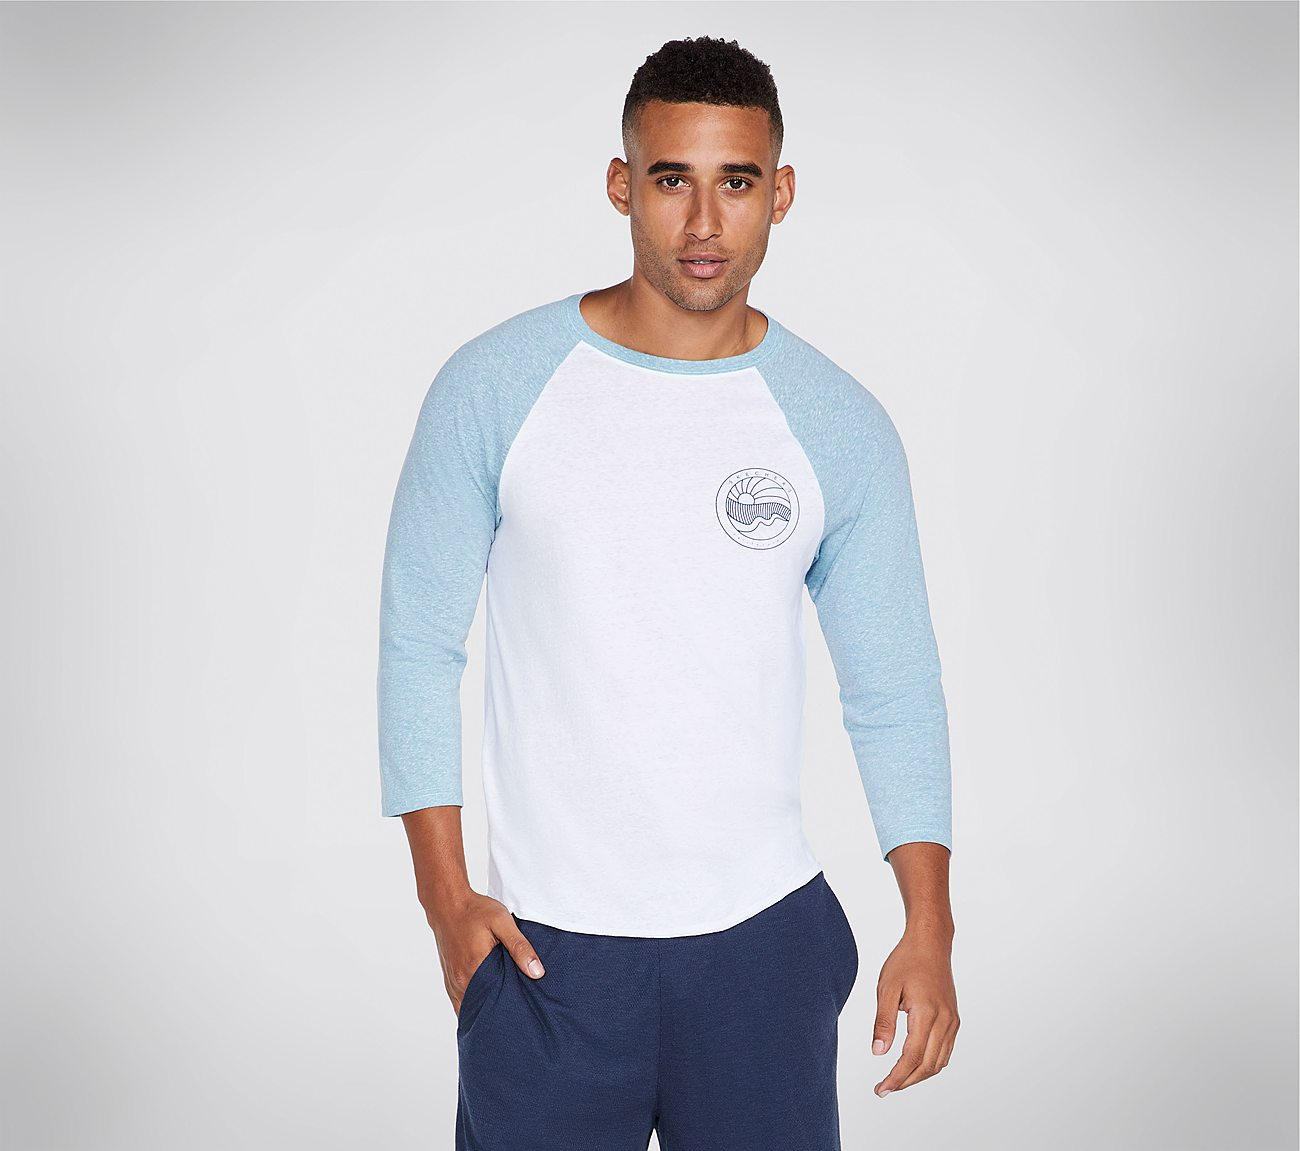 Skechers Apparel Waves Raglan Tee Shirt